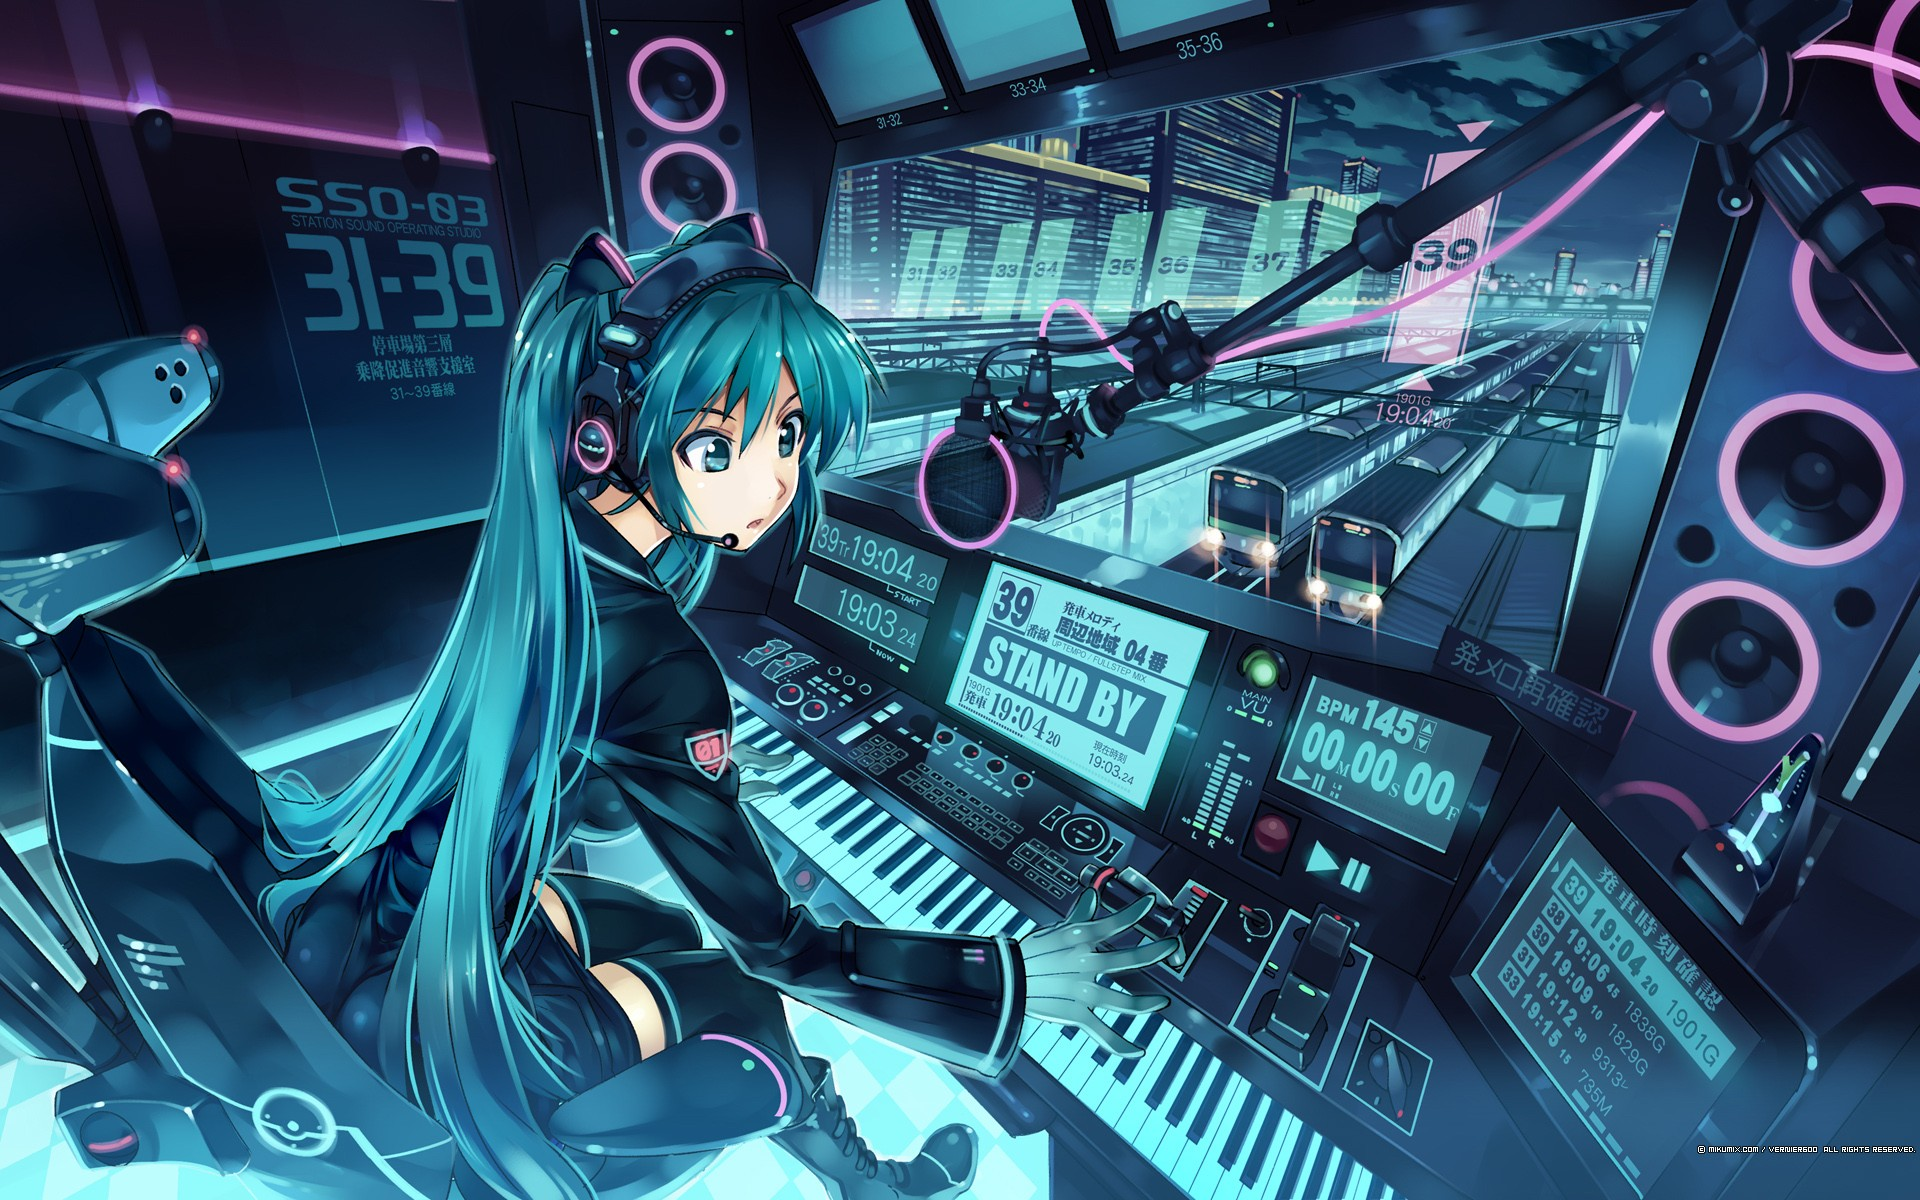 Image: http://www.desktopwallpaperhd.net/wallpapers/20/8/war-wallpaper-background-screensavers-love-hatsune-vocaloid-images-204280.jpg. Category: Anime